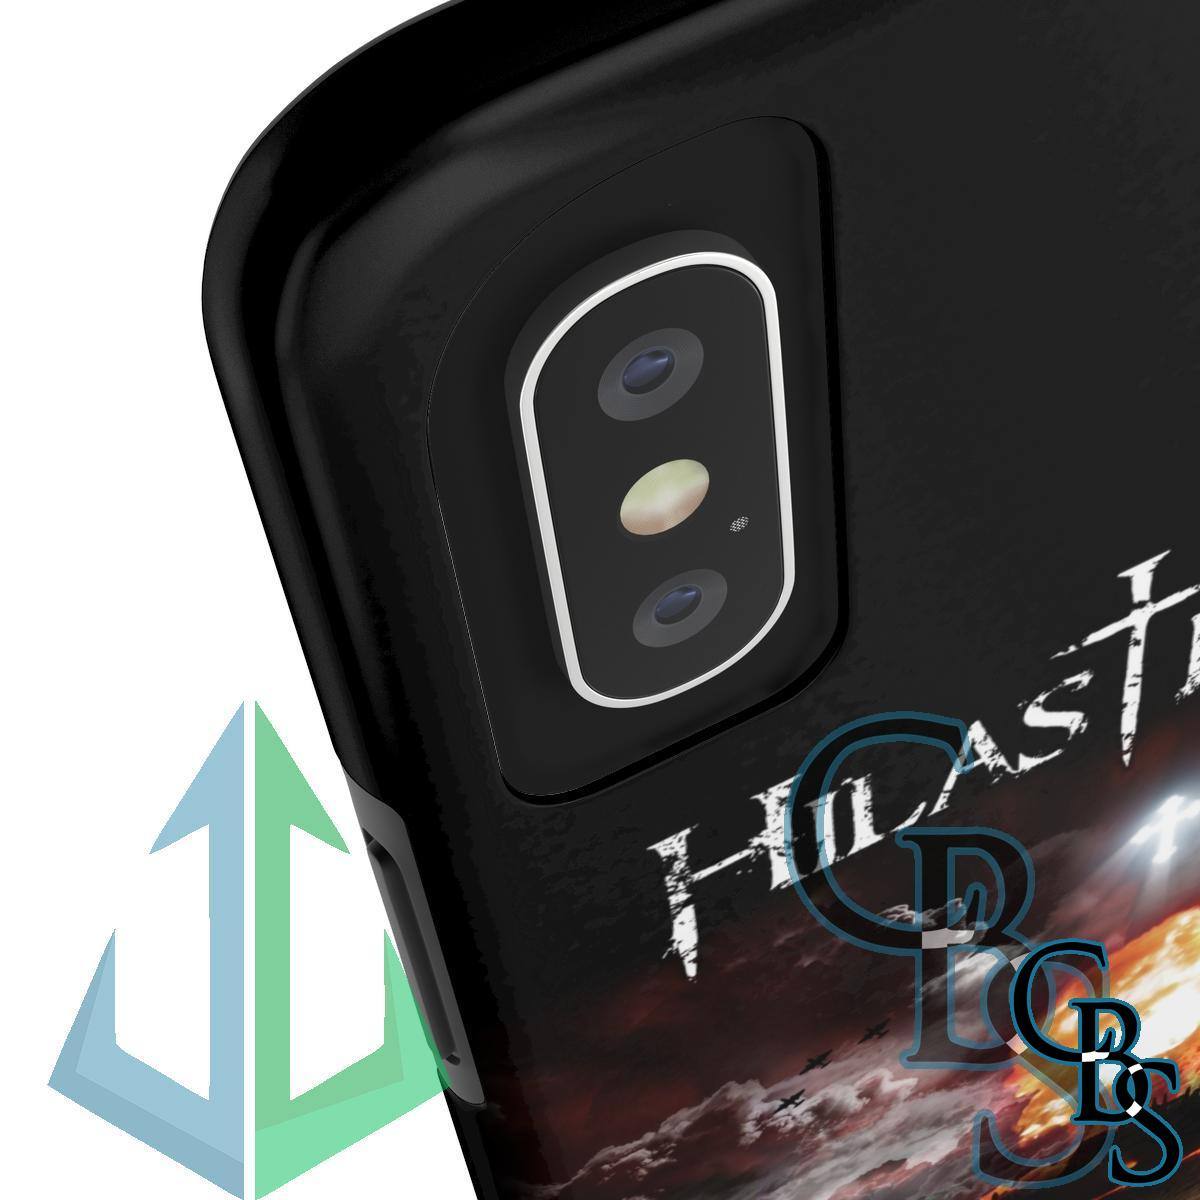 Hilastherion – Signs of the End Tough iPhone Cases (iPhone 7/7 Plus, iPhone 8/8 Plus, iPhone X, XS, XR, iPhone 11, 11 Pro, 11 Pro Max)